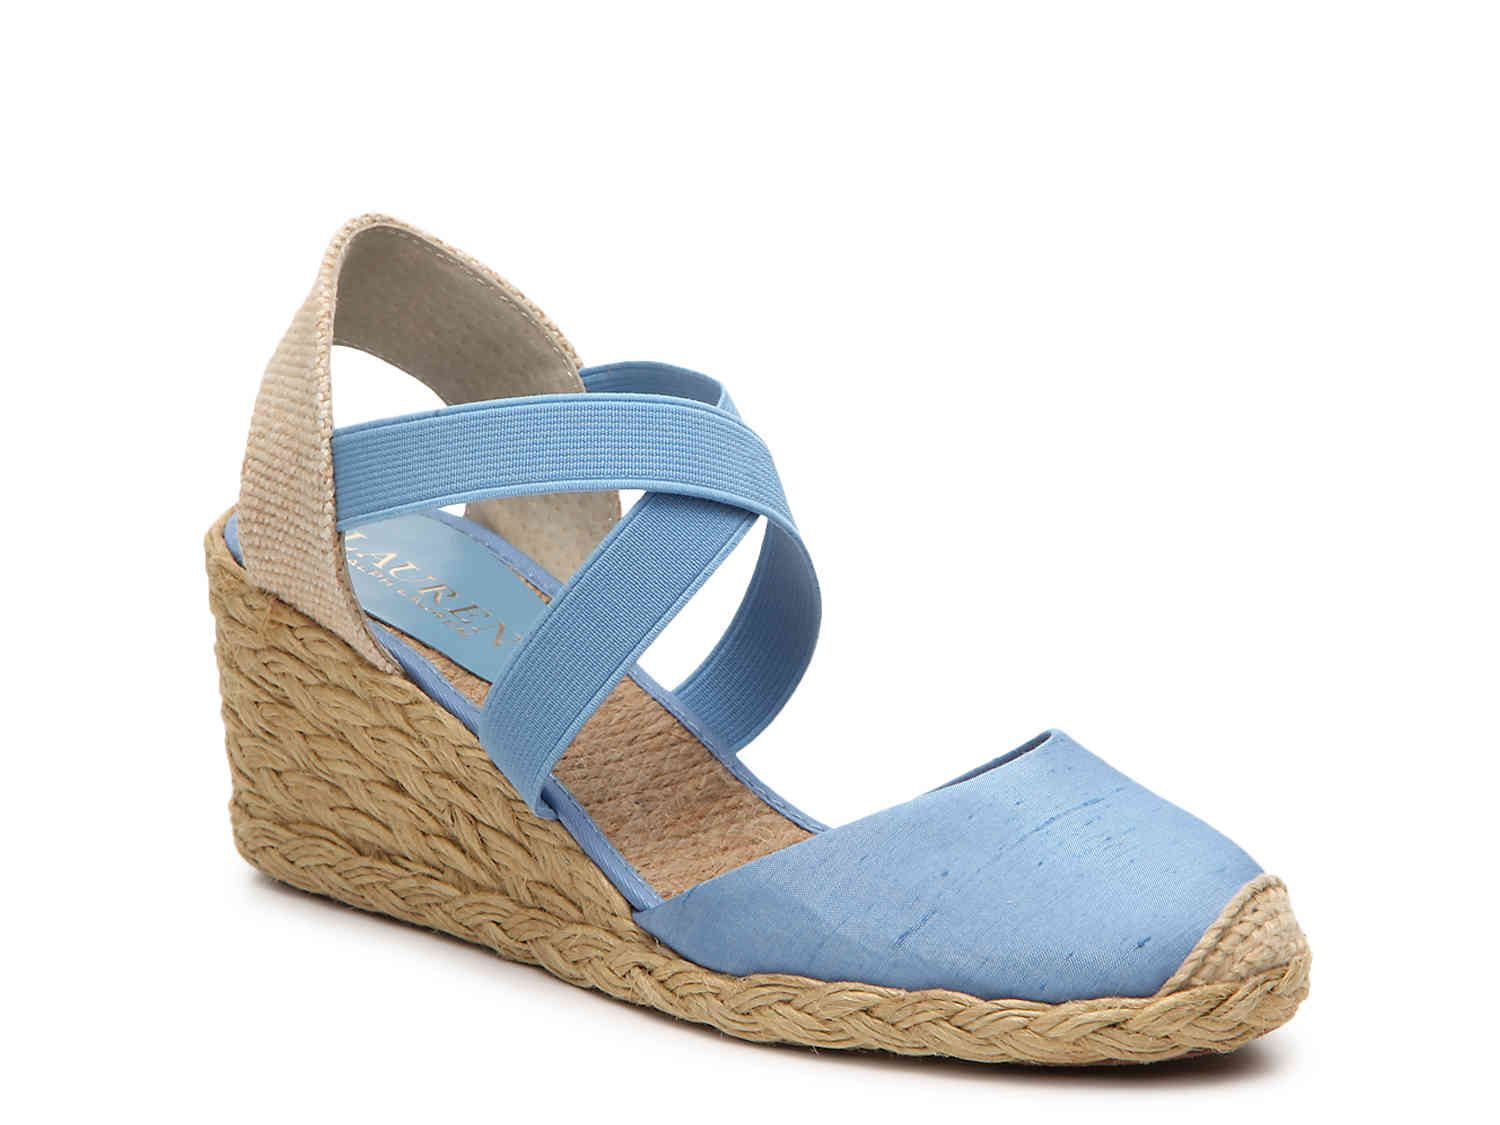 35ac2b5376b Casandra Wedge Sandal | Handbags and Footwear | Shoes, Sandals ...